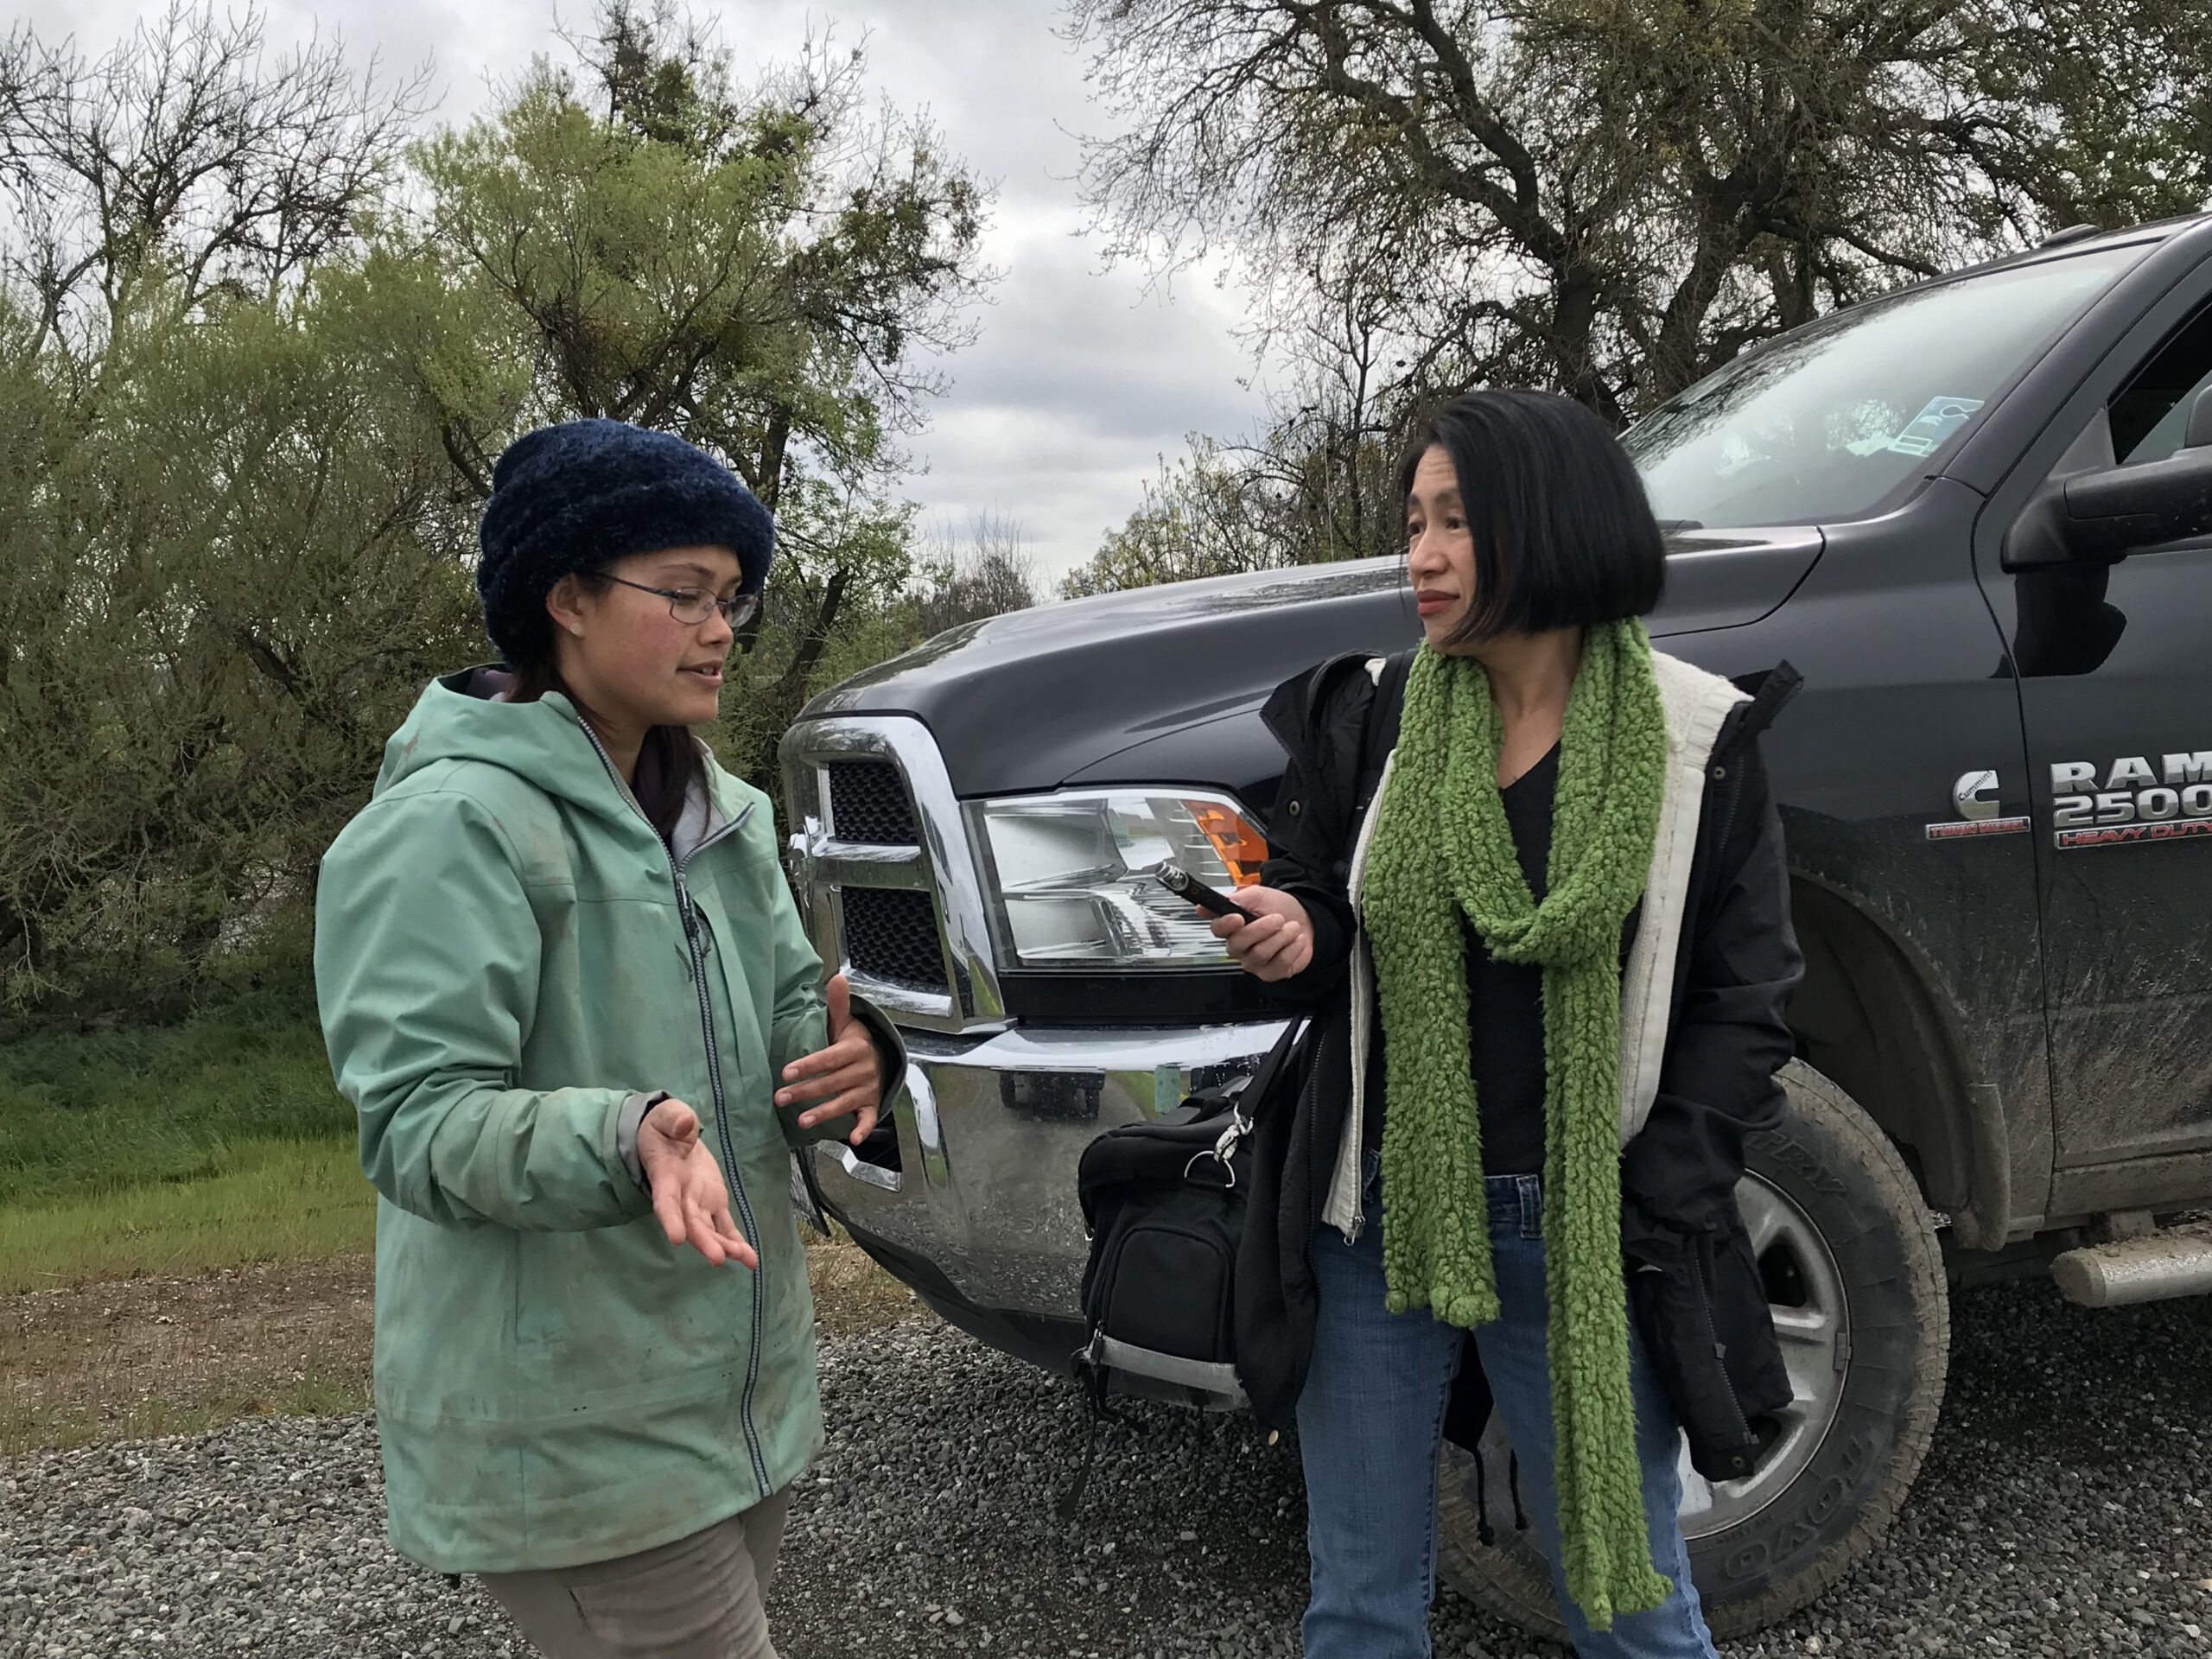 Ching Lee,  Assistant Editor for Ag Alert, interviews Rachelle Tallman (UC Davis) about the project at River Garden Farms.